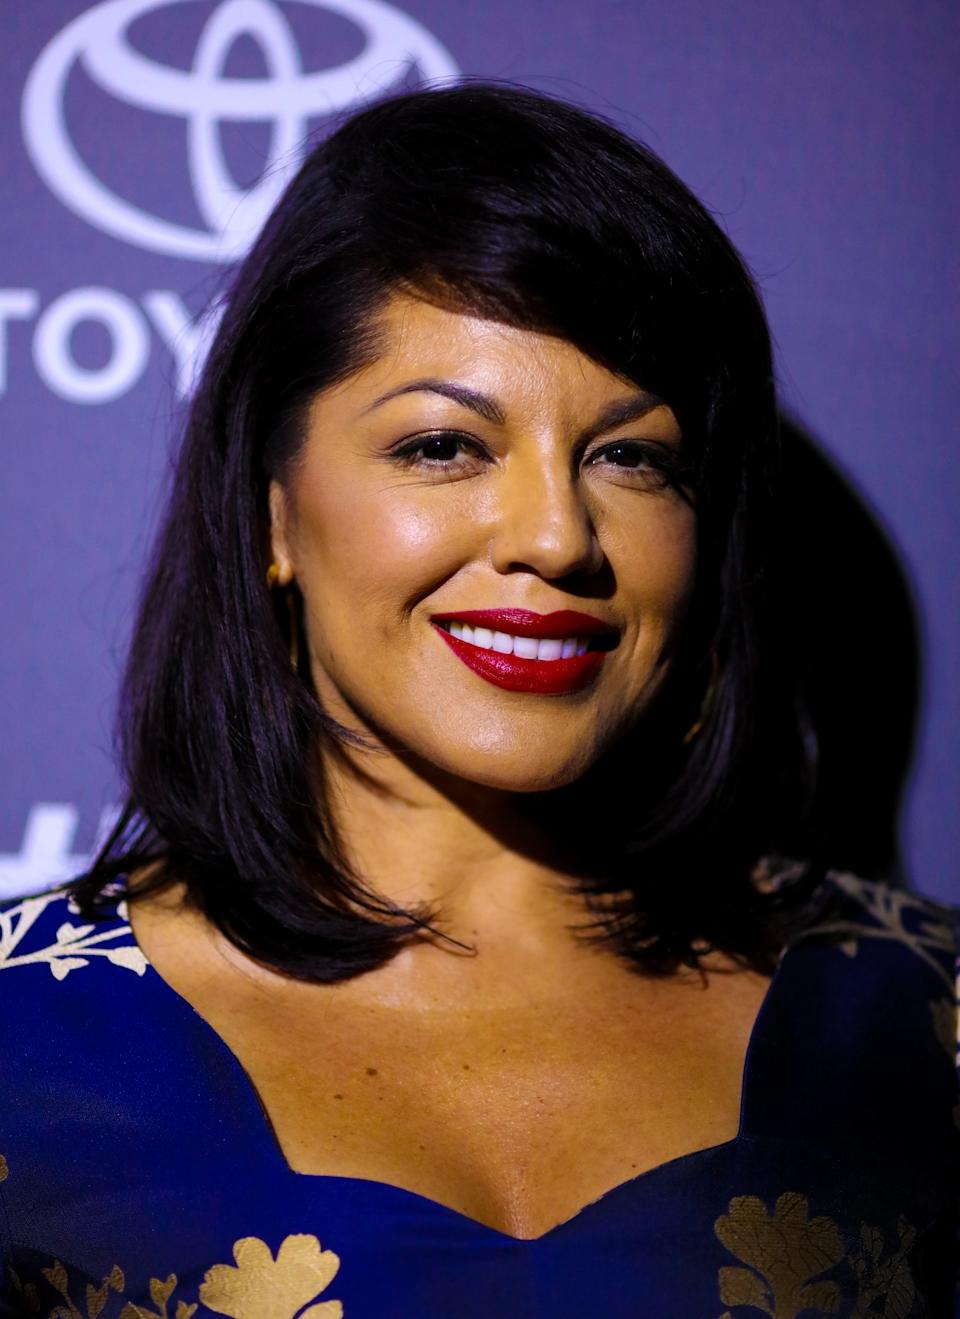 Sara Ramirez attends the celebration of ABC's TGIT Line-up held at Gracias Madre on September 26, 2015 in West Hollywood, California. (Photo by Mark Davis/Getty Images)